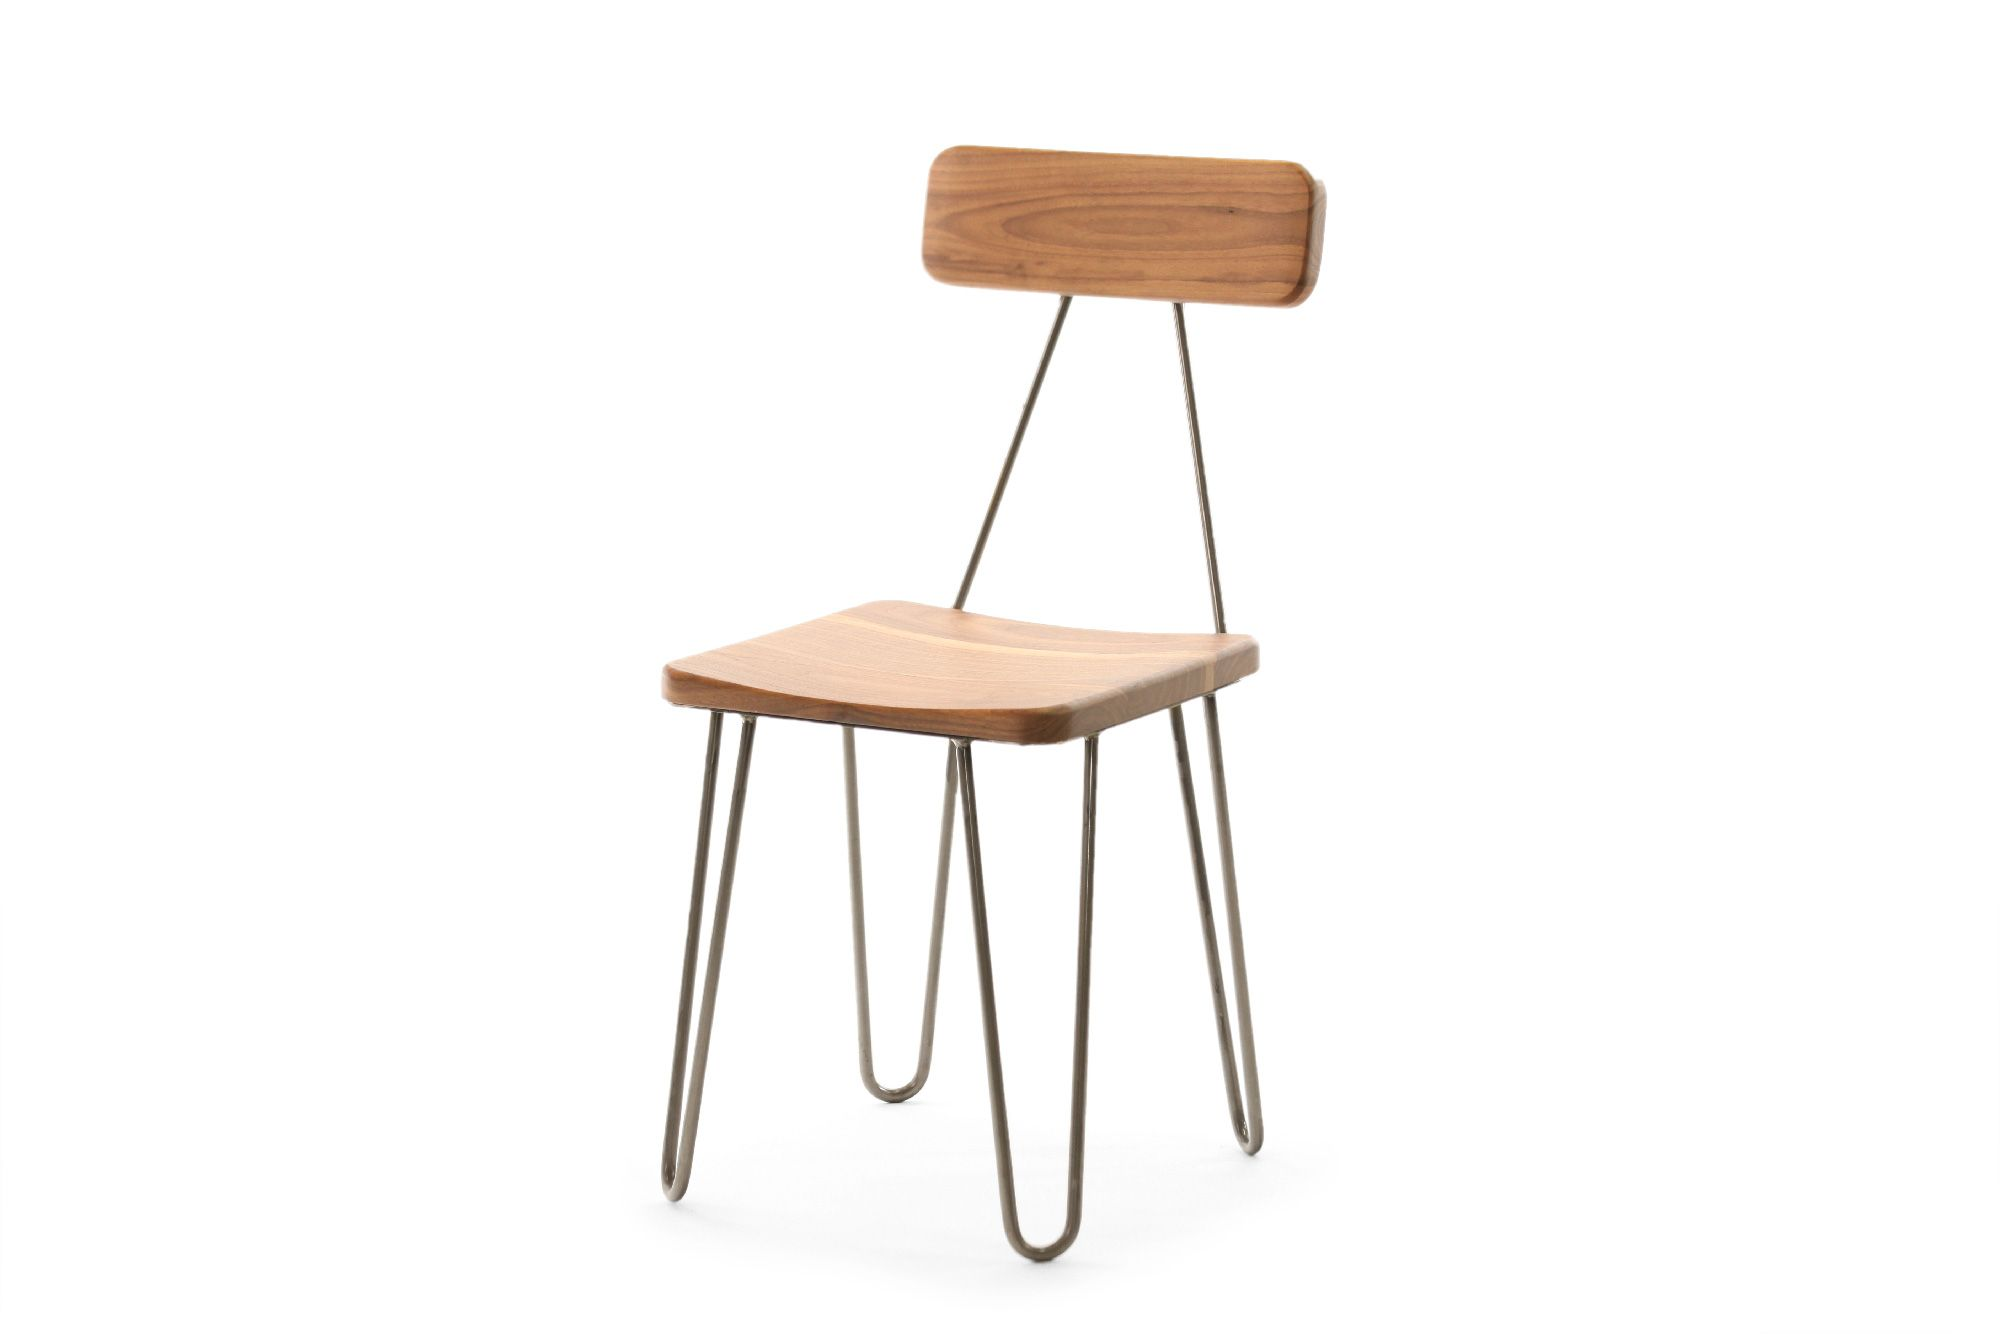 Fabulous Hairpin Legs For Less Offers A Variety Of Sturdy Yet Modern Spiritservingveterans Wood Chair Design Ideas Spiritservingveteransorg